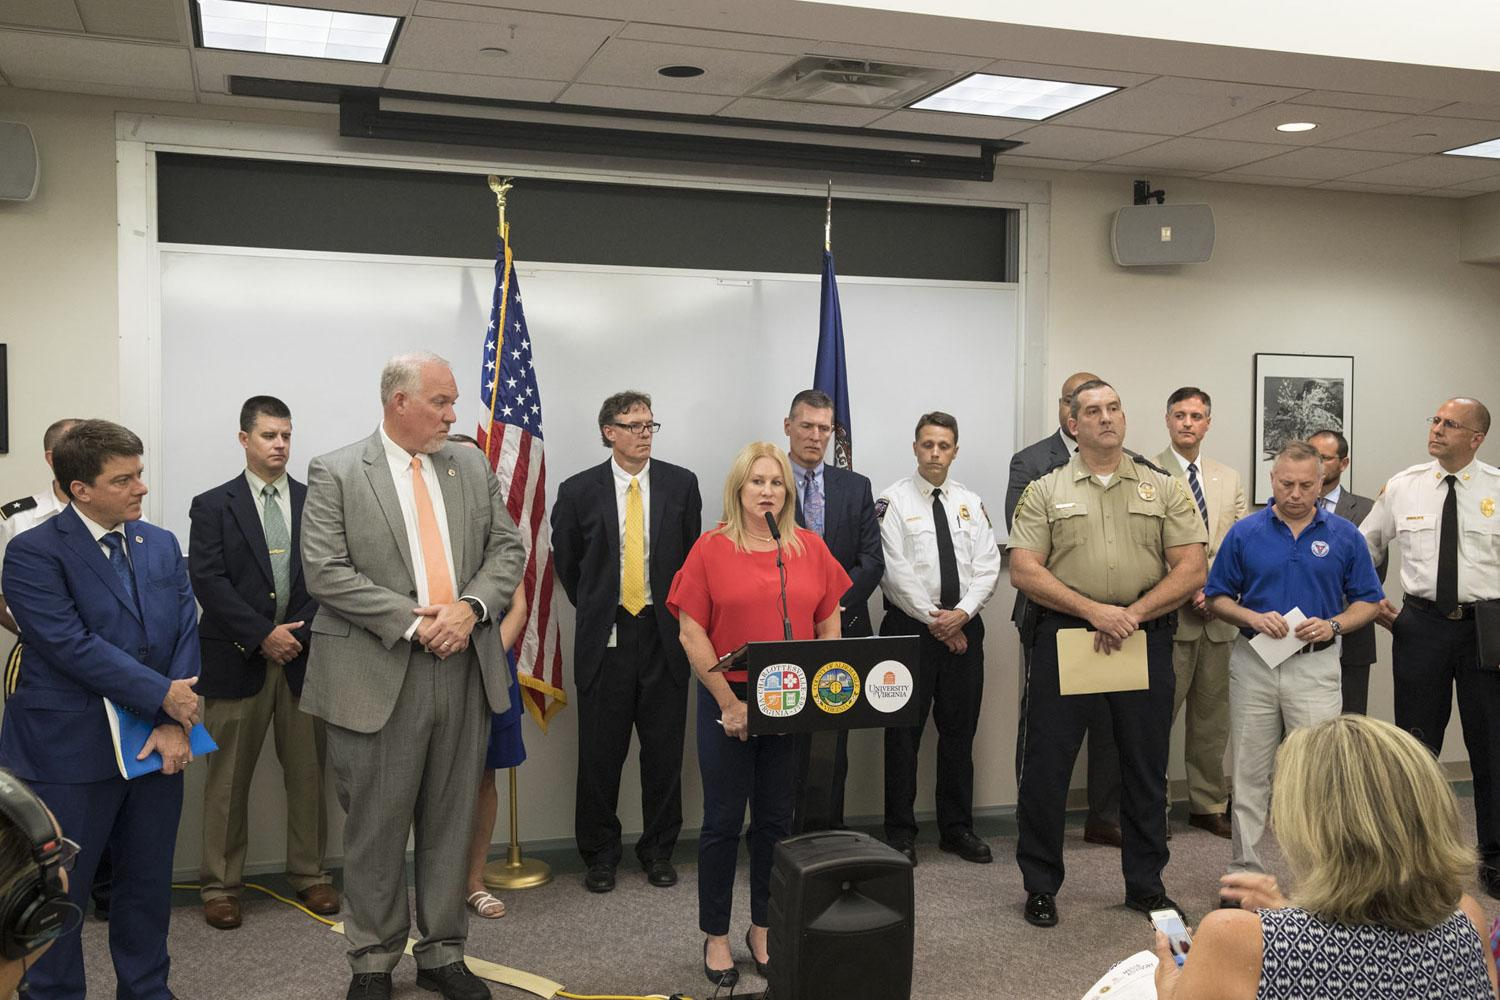 University, state and local officials briefed the media Wednesday on security plans as Virginia Gov. Ralph Northam declared a state of local emergency. (Photo by Dan Addison, University Communications)